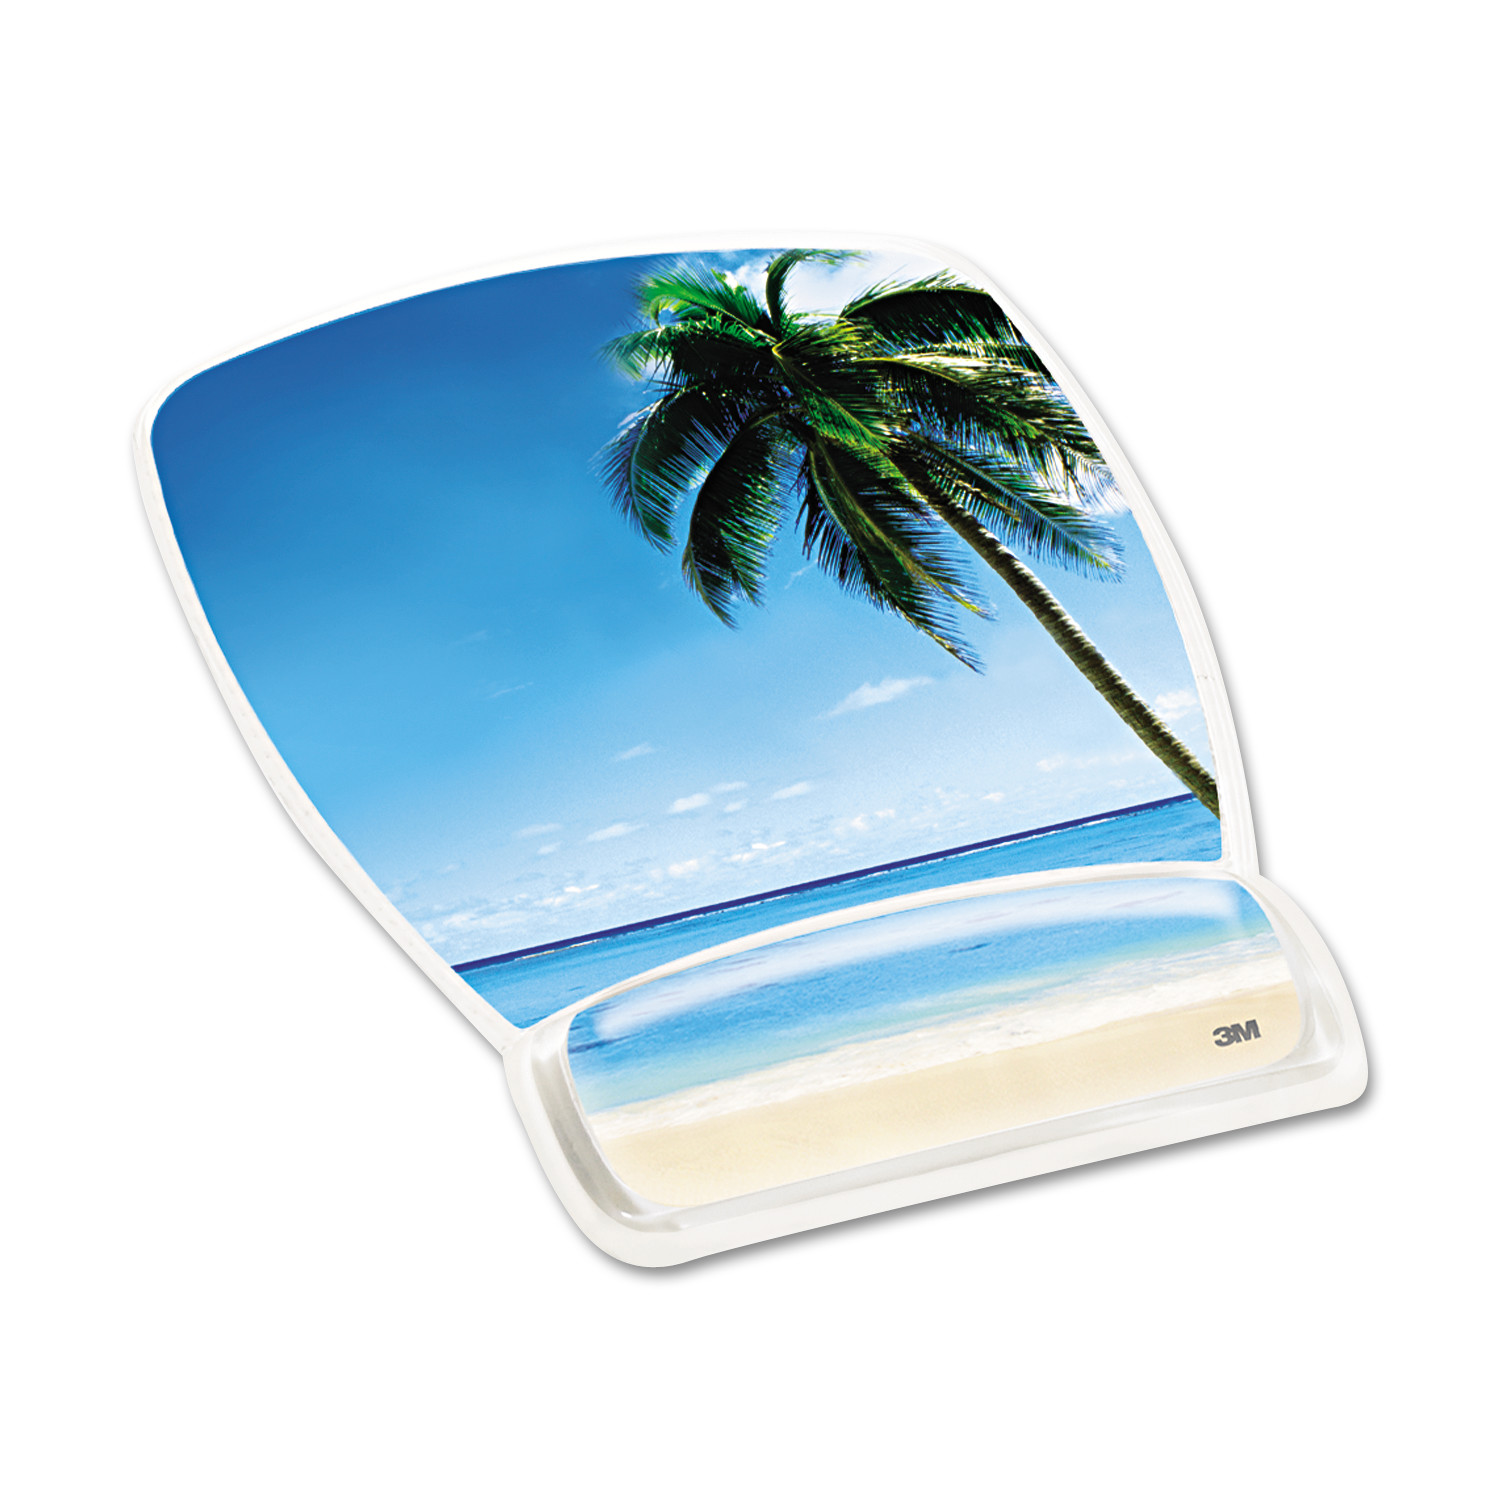 3M Fun Design Clear Gel Mouse Pad Wrist Rest, 6 4 5 x 8 3 5 x 3 4, Beach Design by 3M